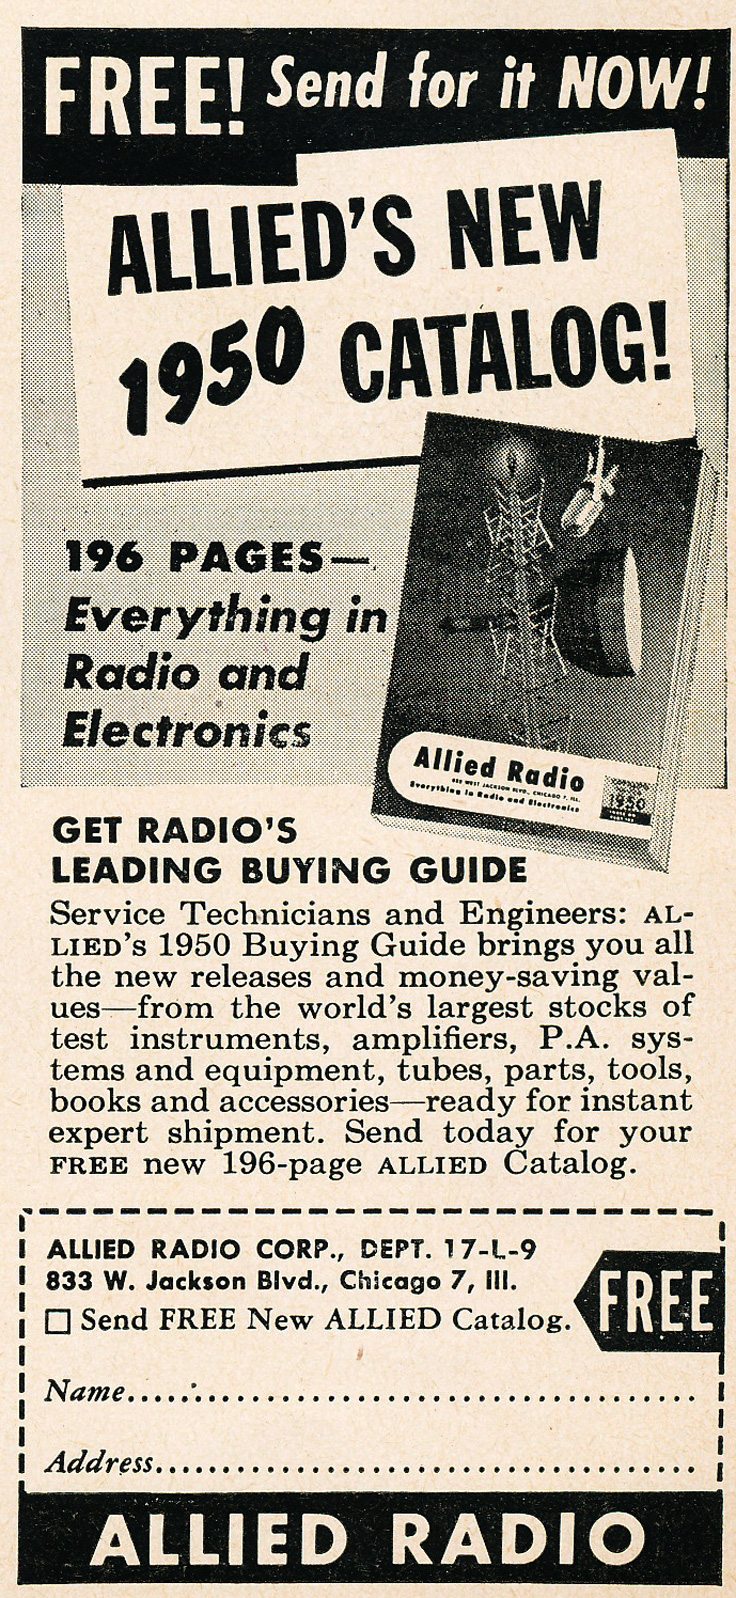 1949 ad for the 1950 Allied Radio catalog in Reel2ReelTexas.com's vintage recording collection